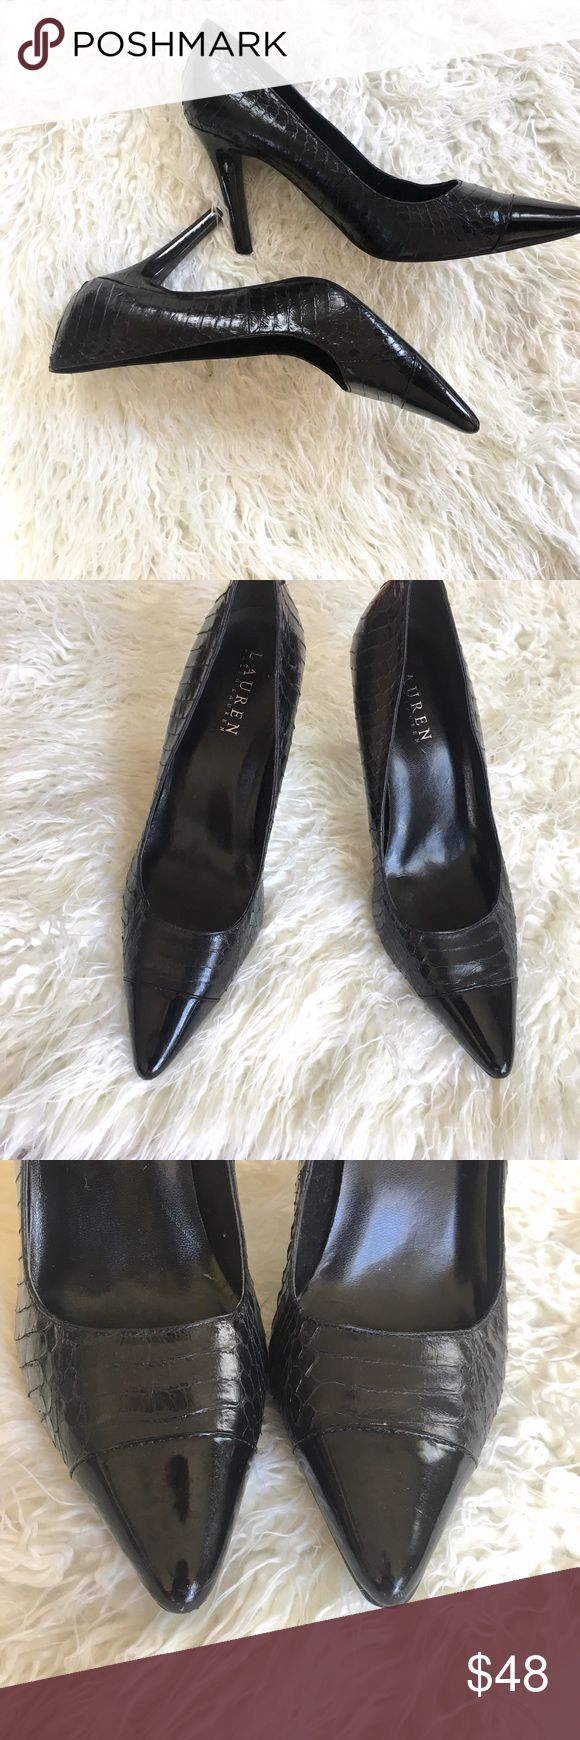 Ralph Lauren snake skin patent leather heels Gorgeous, sexy stilettos with snake skin and a patent leather pointed toe.  Very good condition minus a few minor, almost unnoticeable scuffs on the back of the heel. Add this to a bundle to save 15%. Lauren Ralph Lauren Shoes Heels